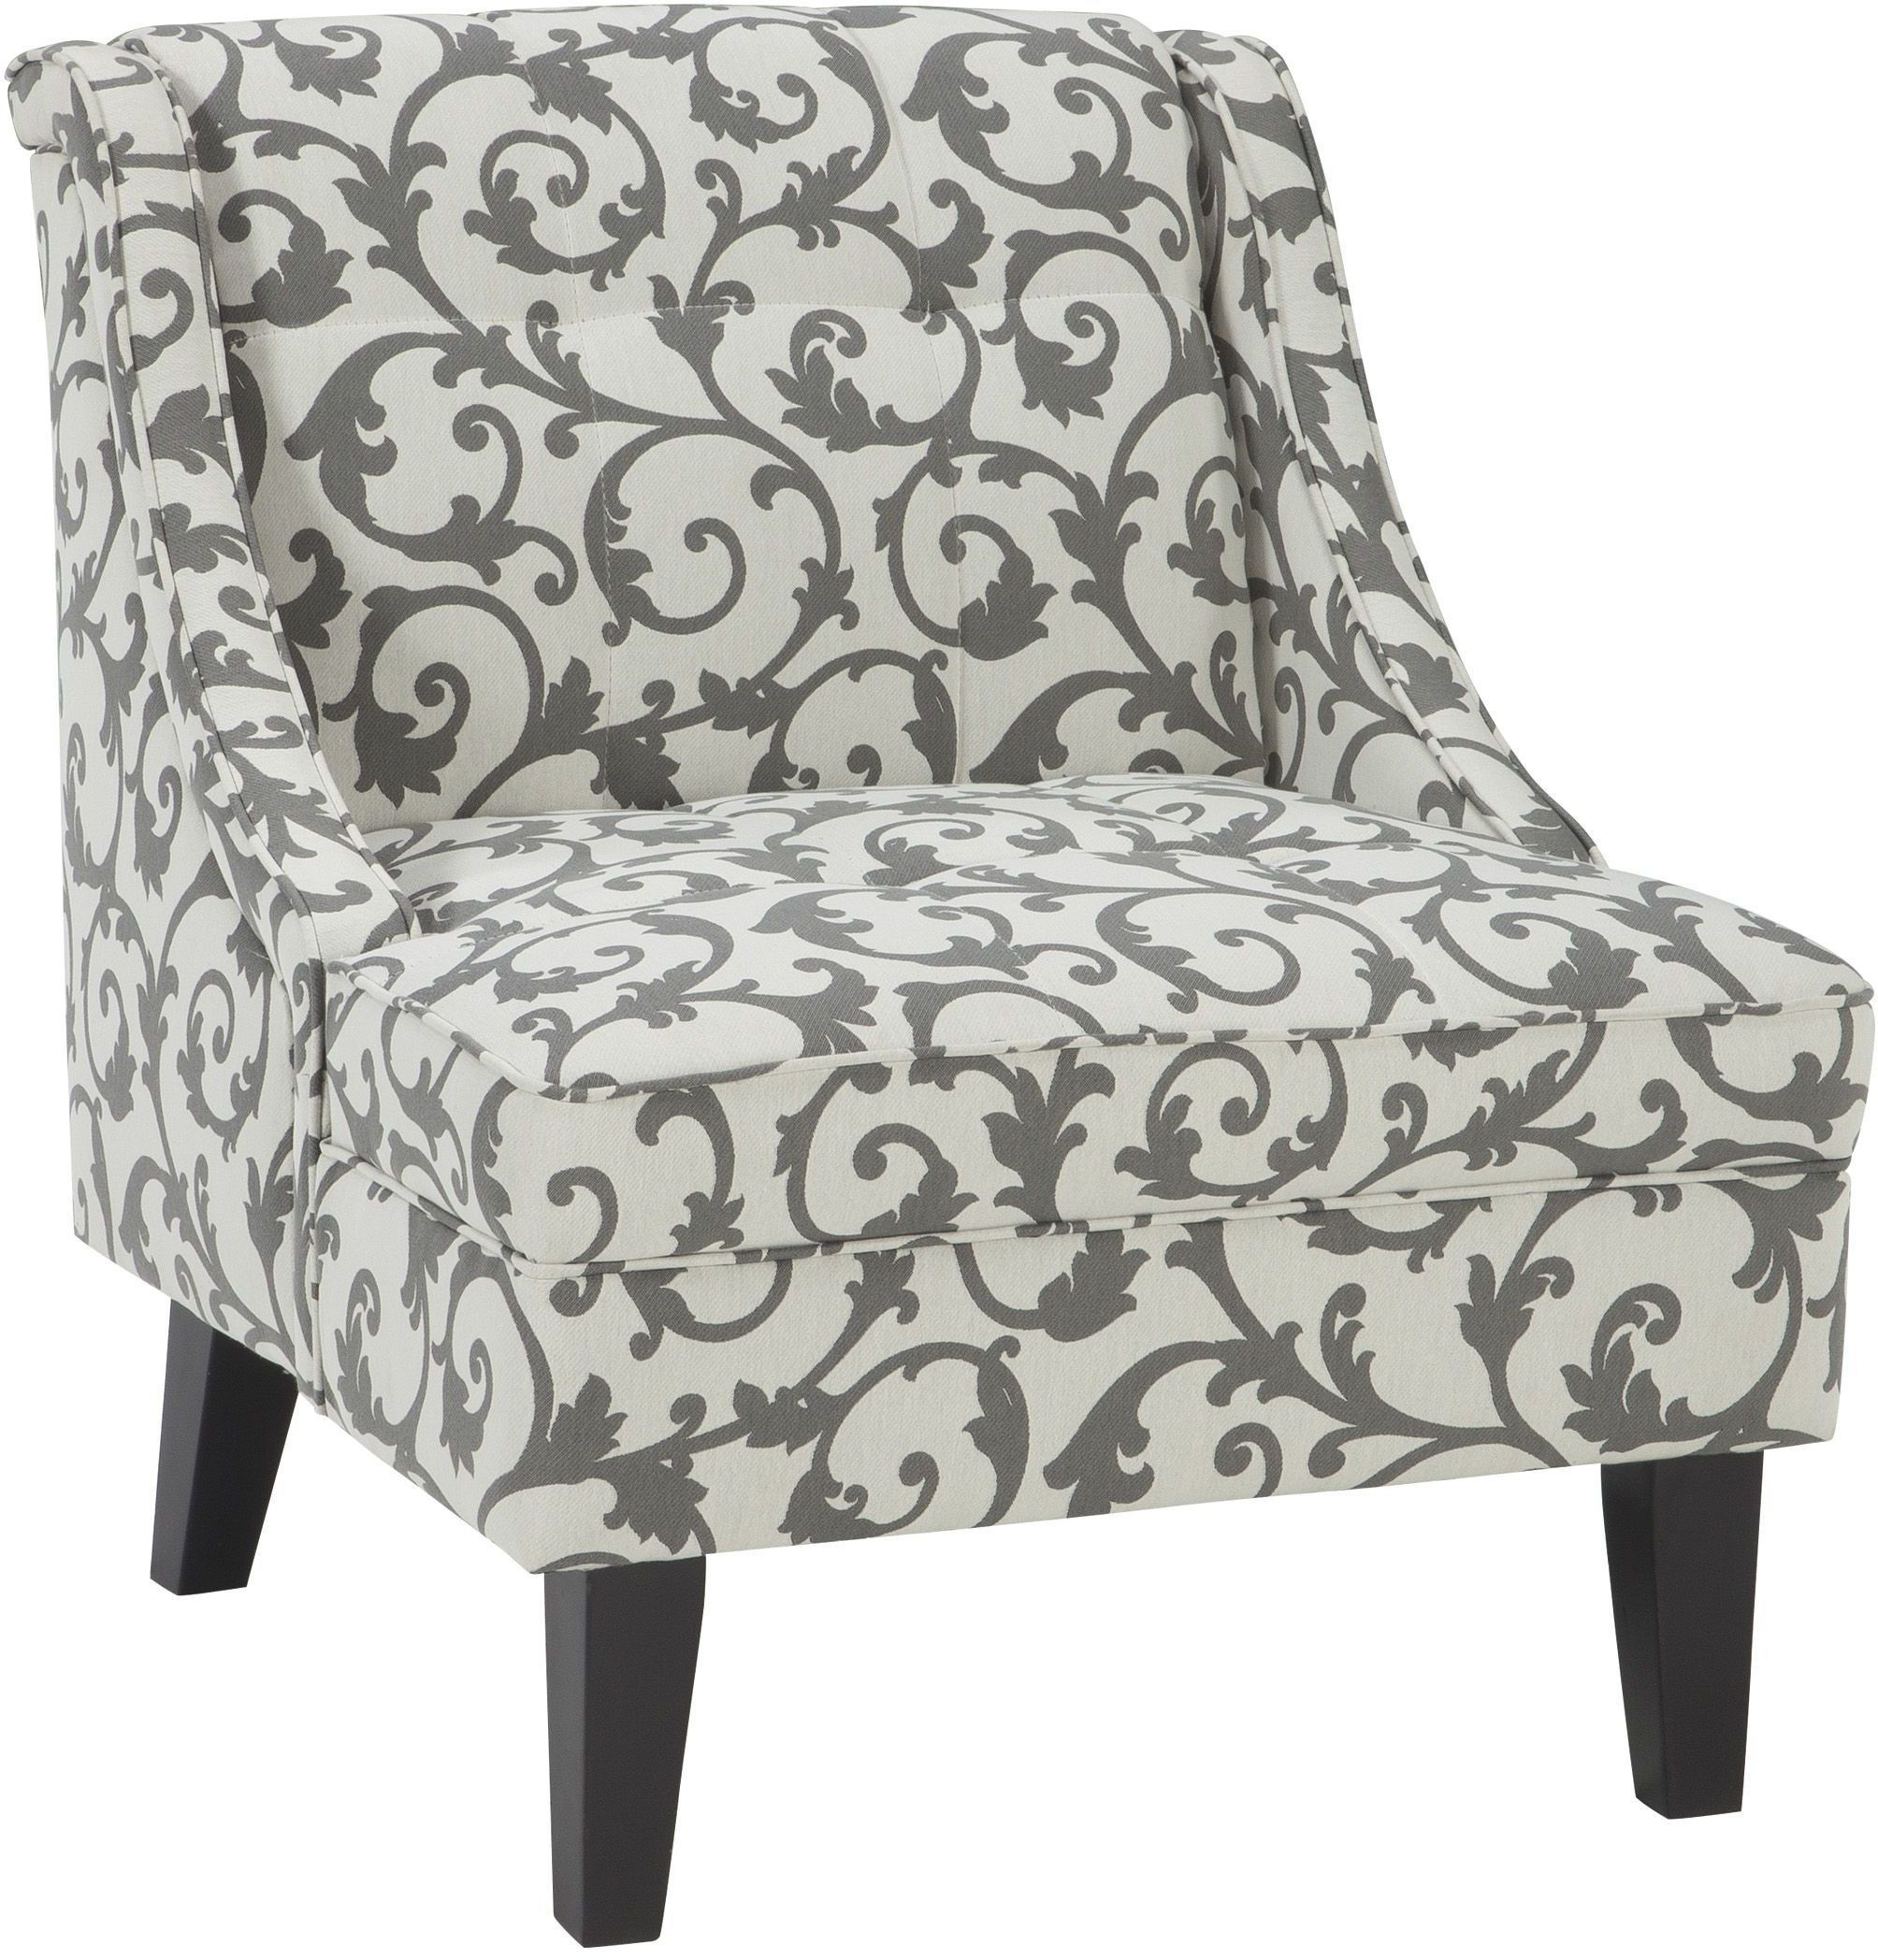 Kexlor Gray Accent Chair from Ashley